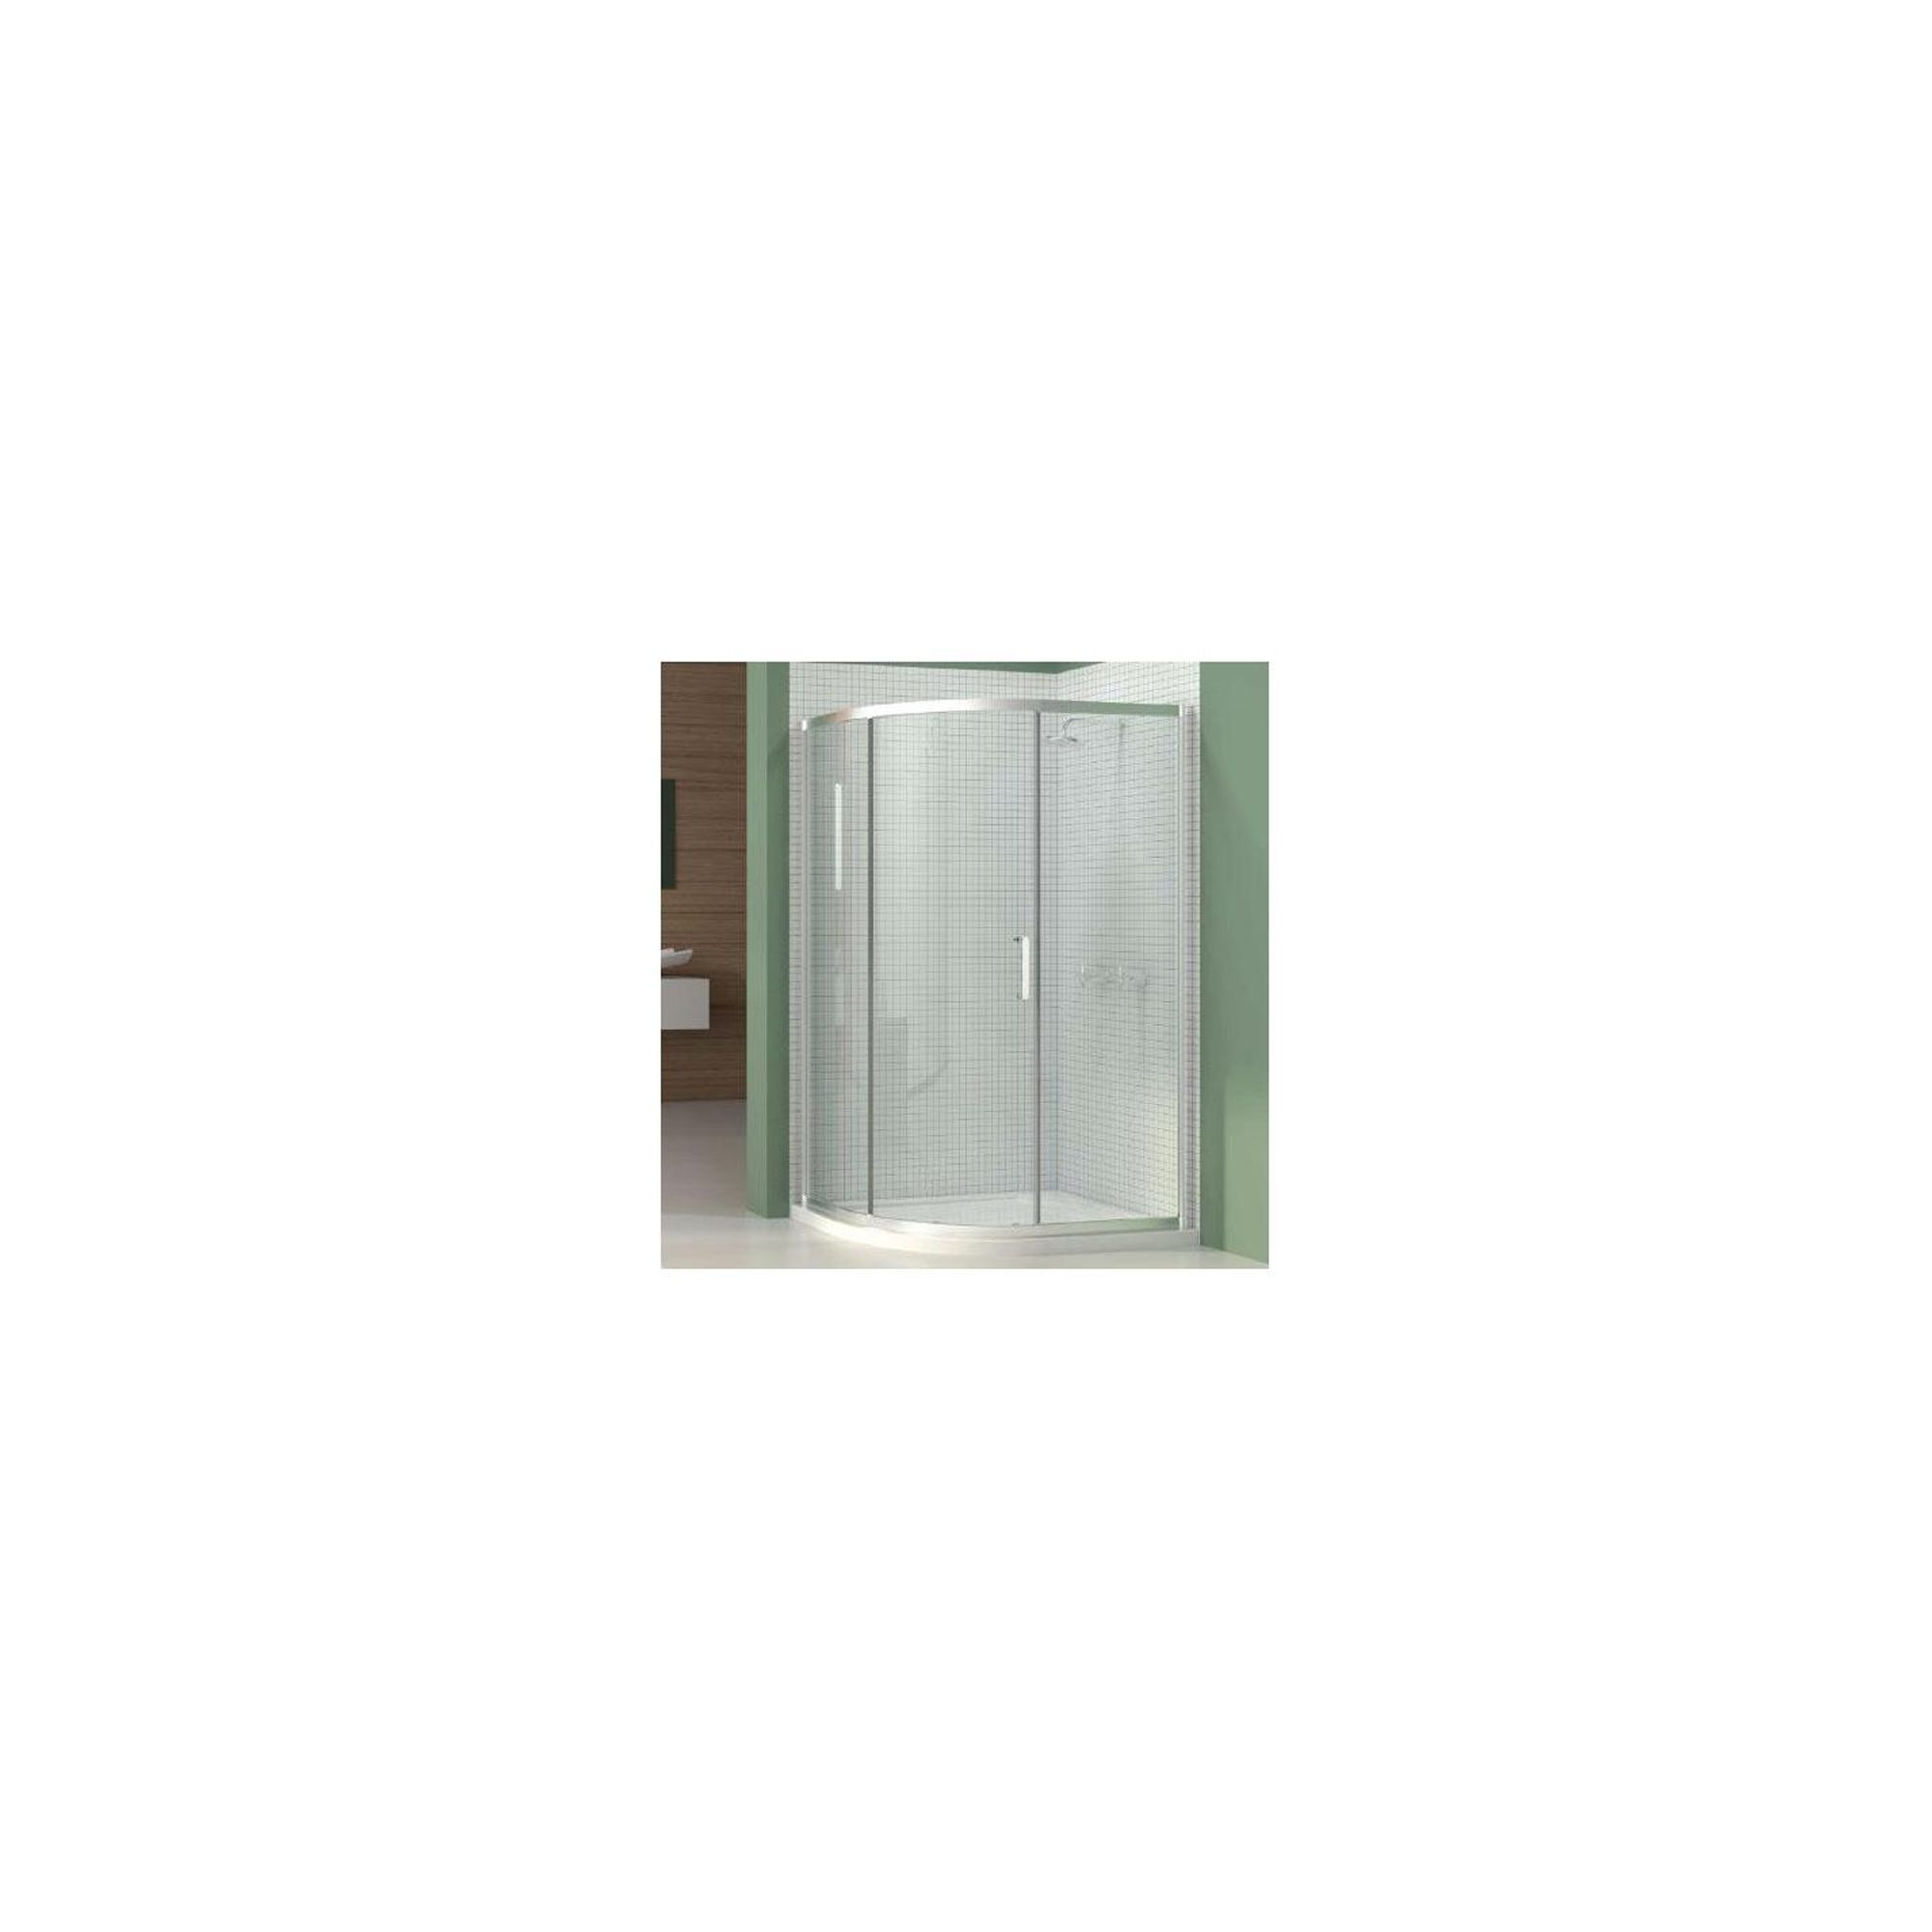 Merlyn Vivid Six Offset Quadrant Shower Door, 900mm x 760mm, 6mm Glass at Tesco Direct